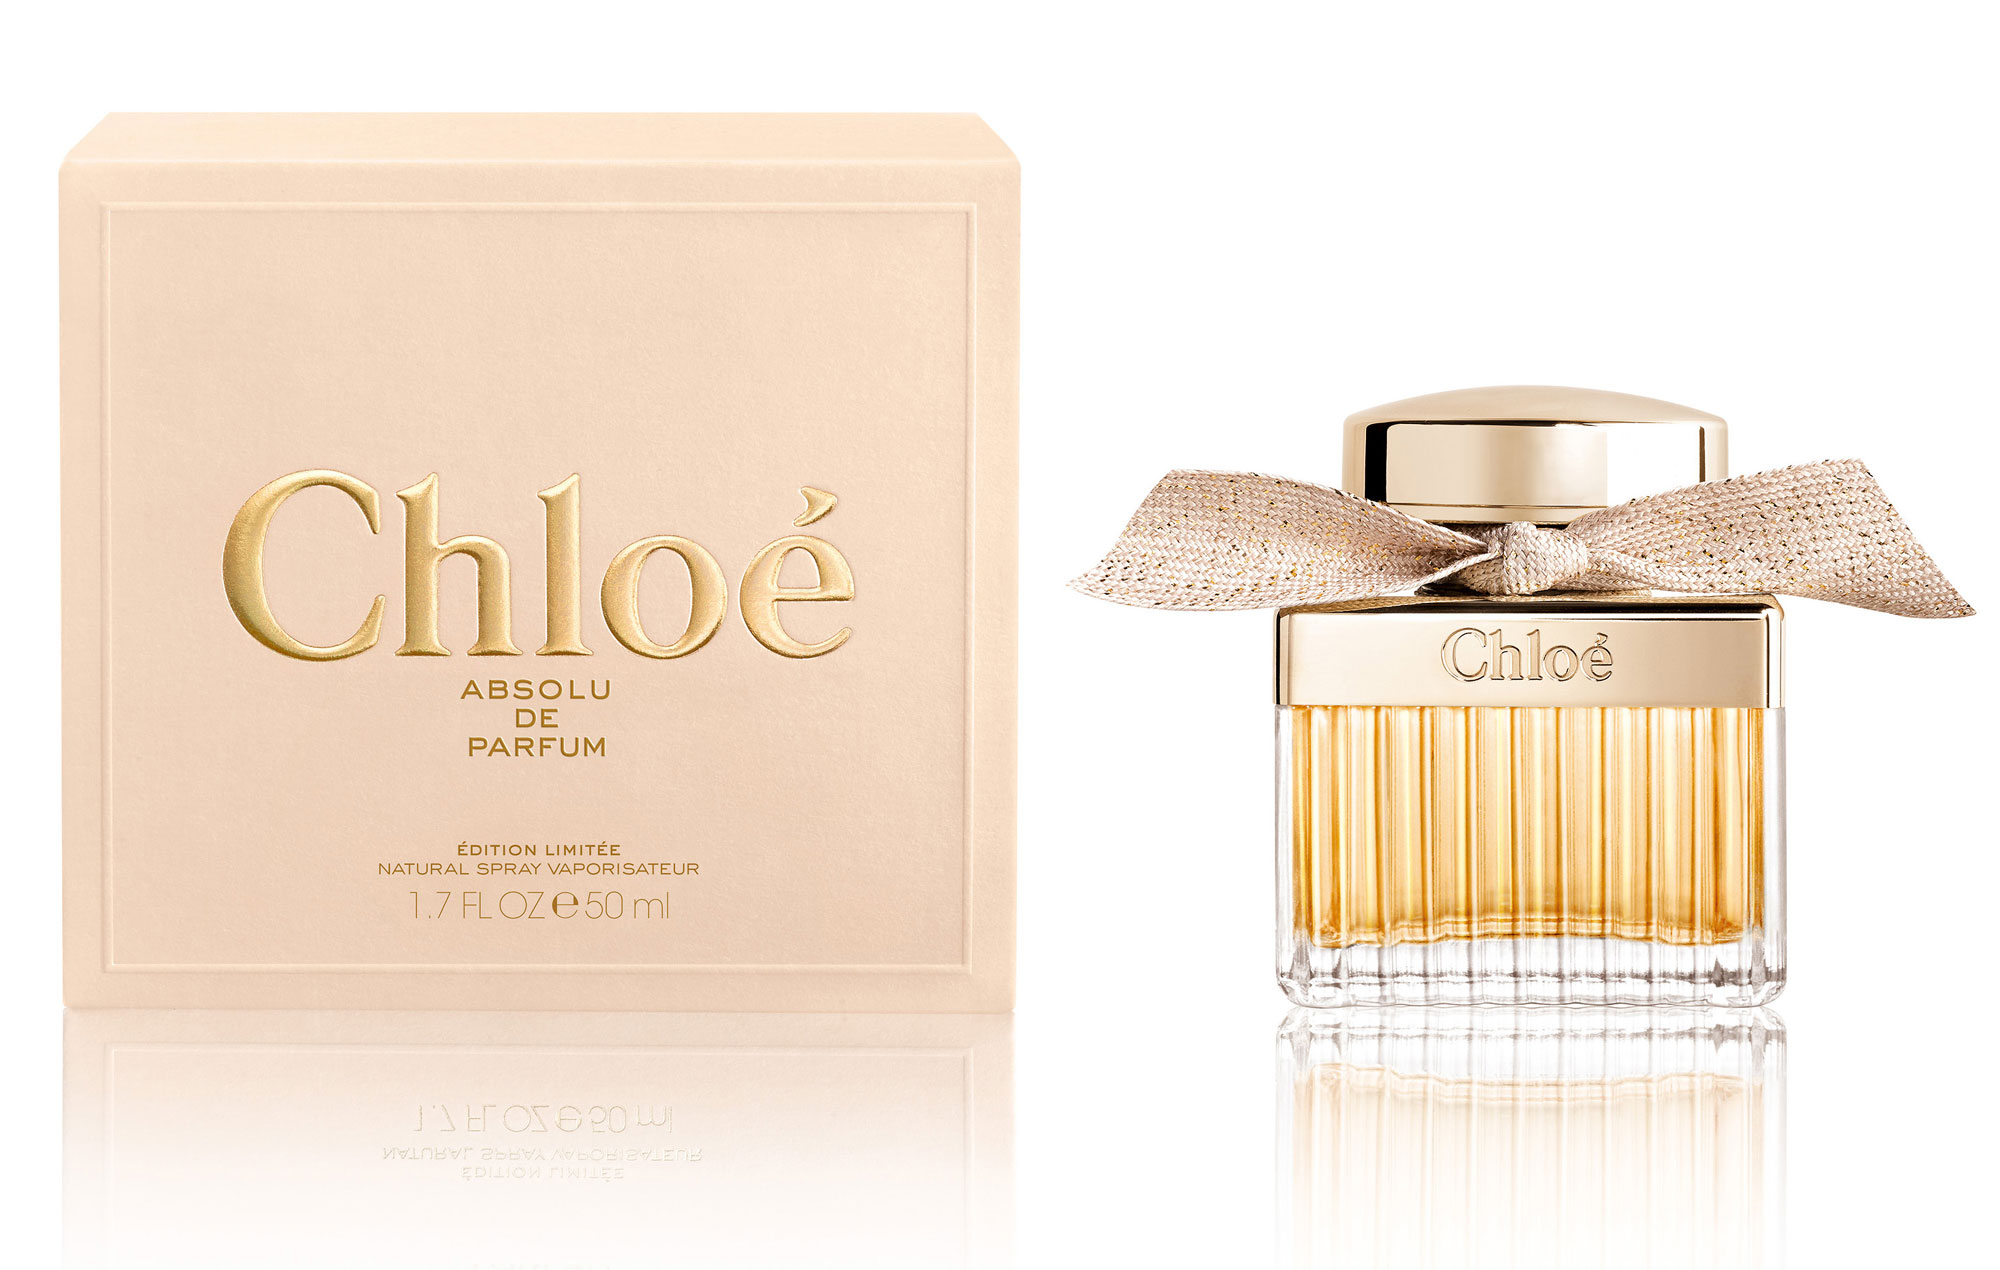 Chloé Absolu De Parfum Chloé Perfume A New Fragrance For Women 2017